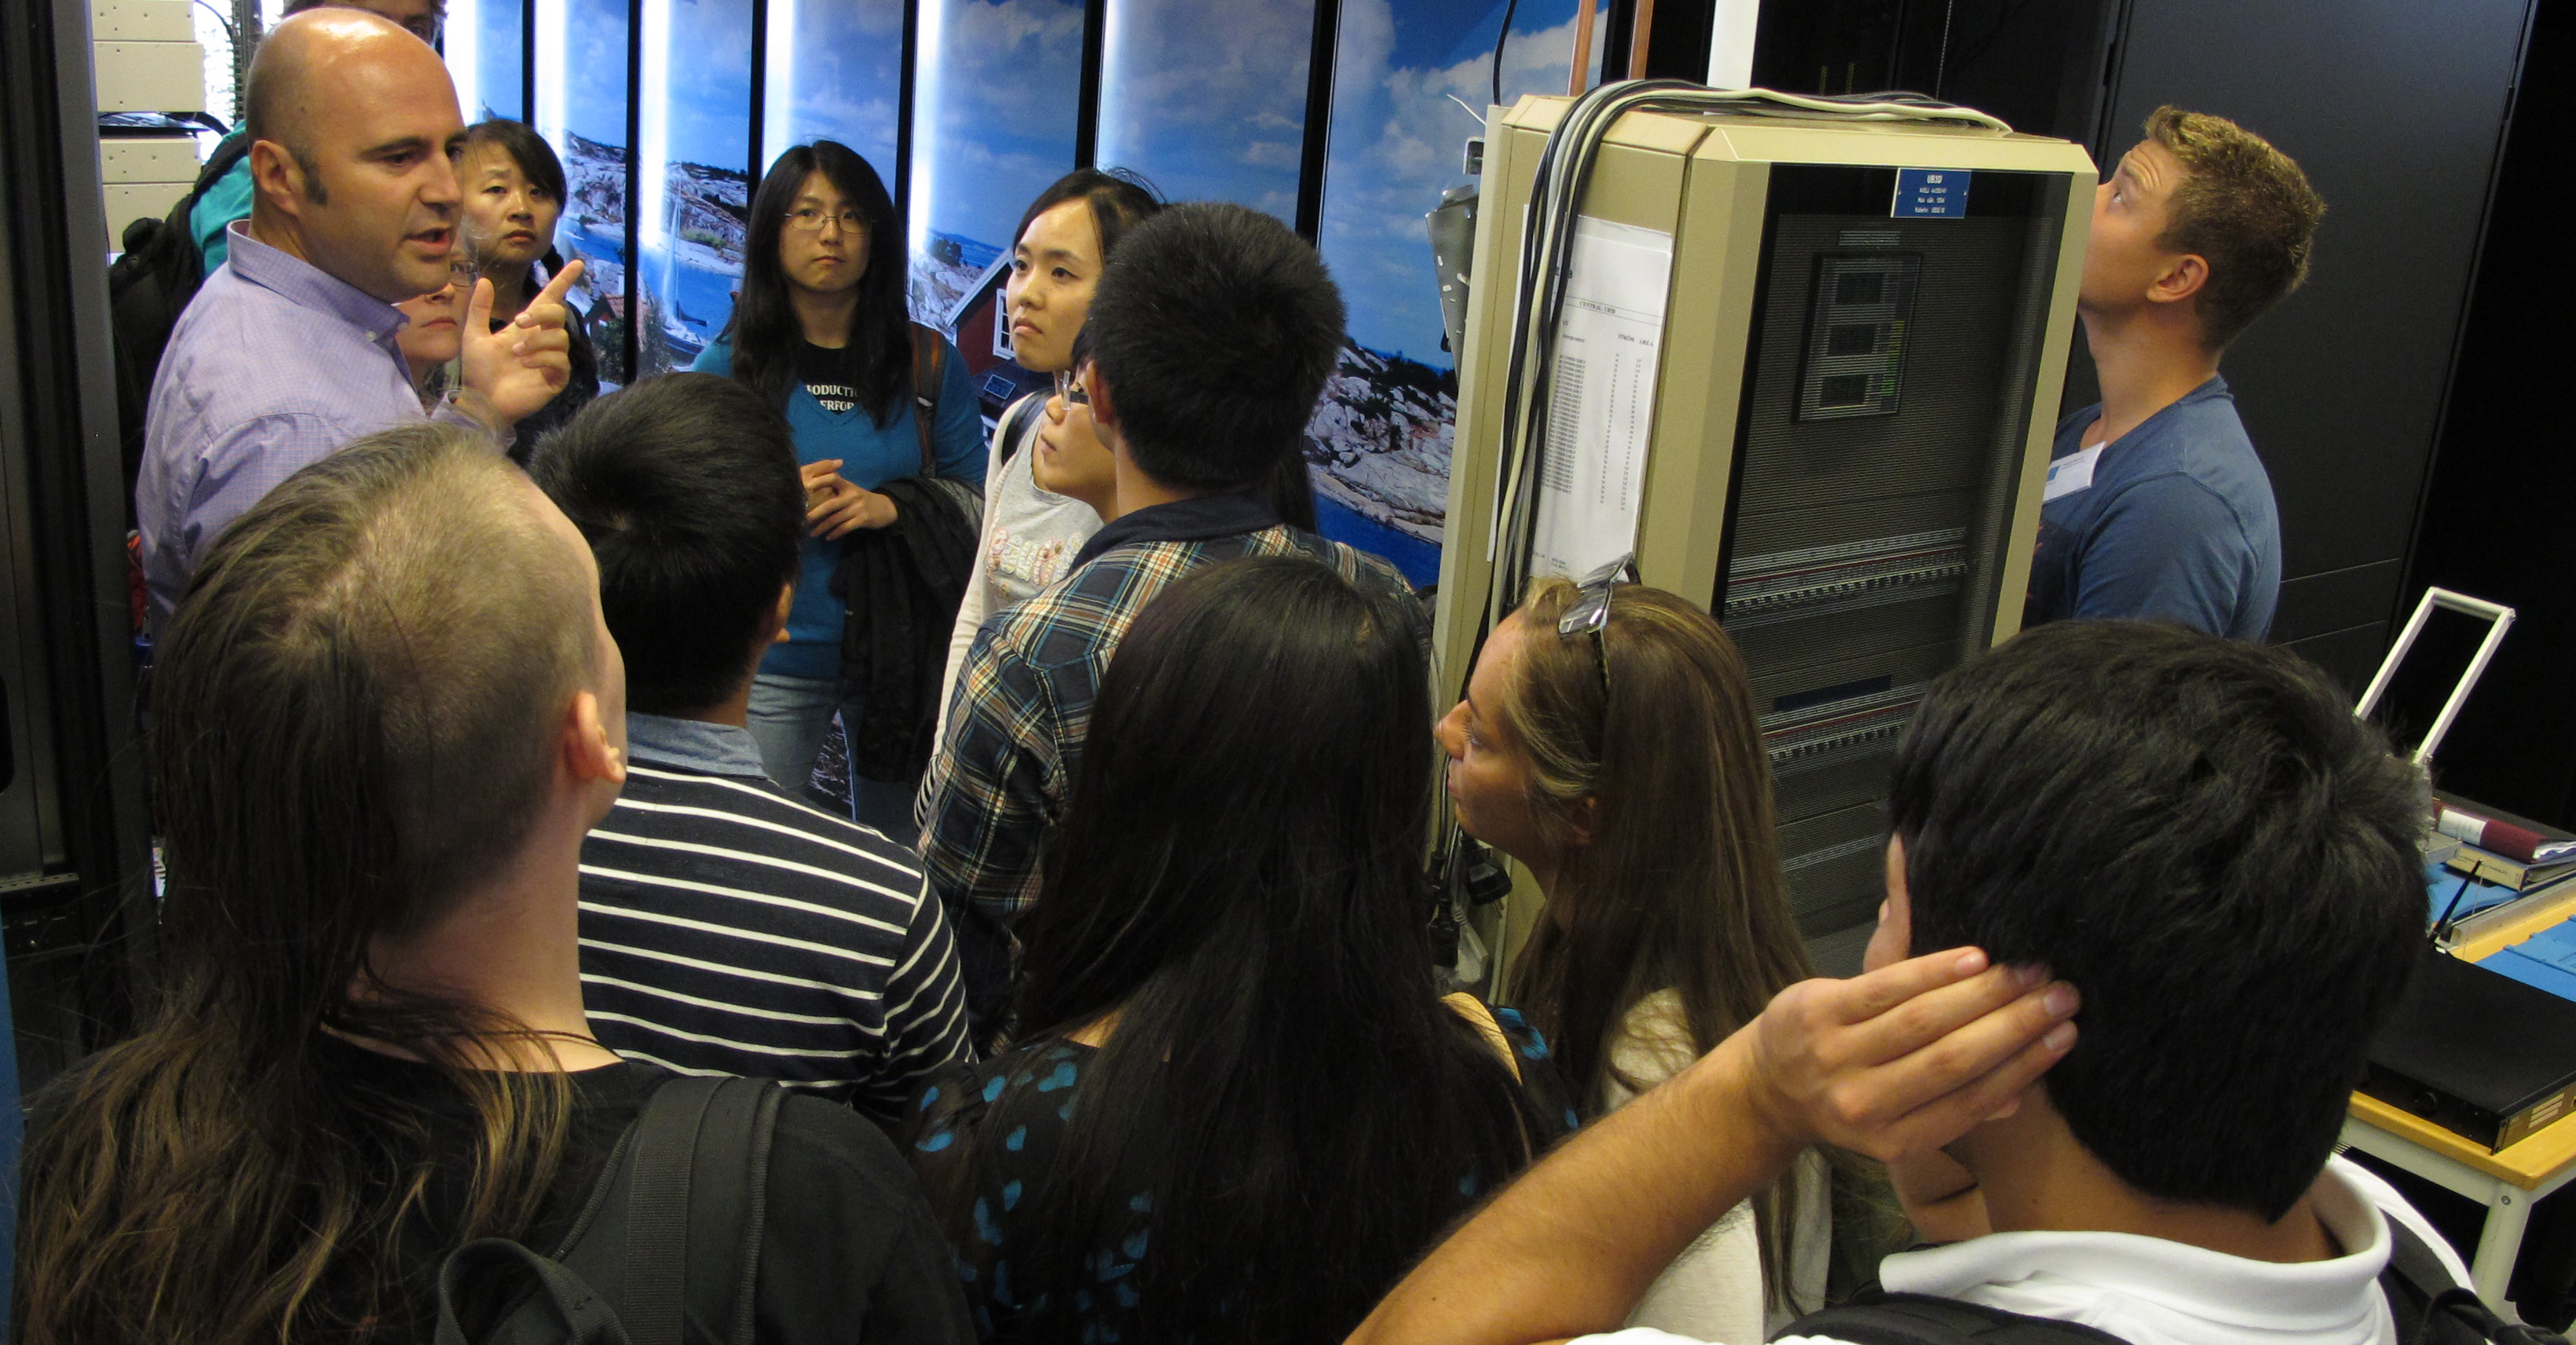 Students on a tour of PDC computer hall during a PDC summer school